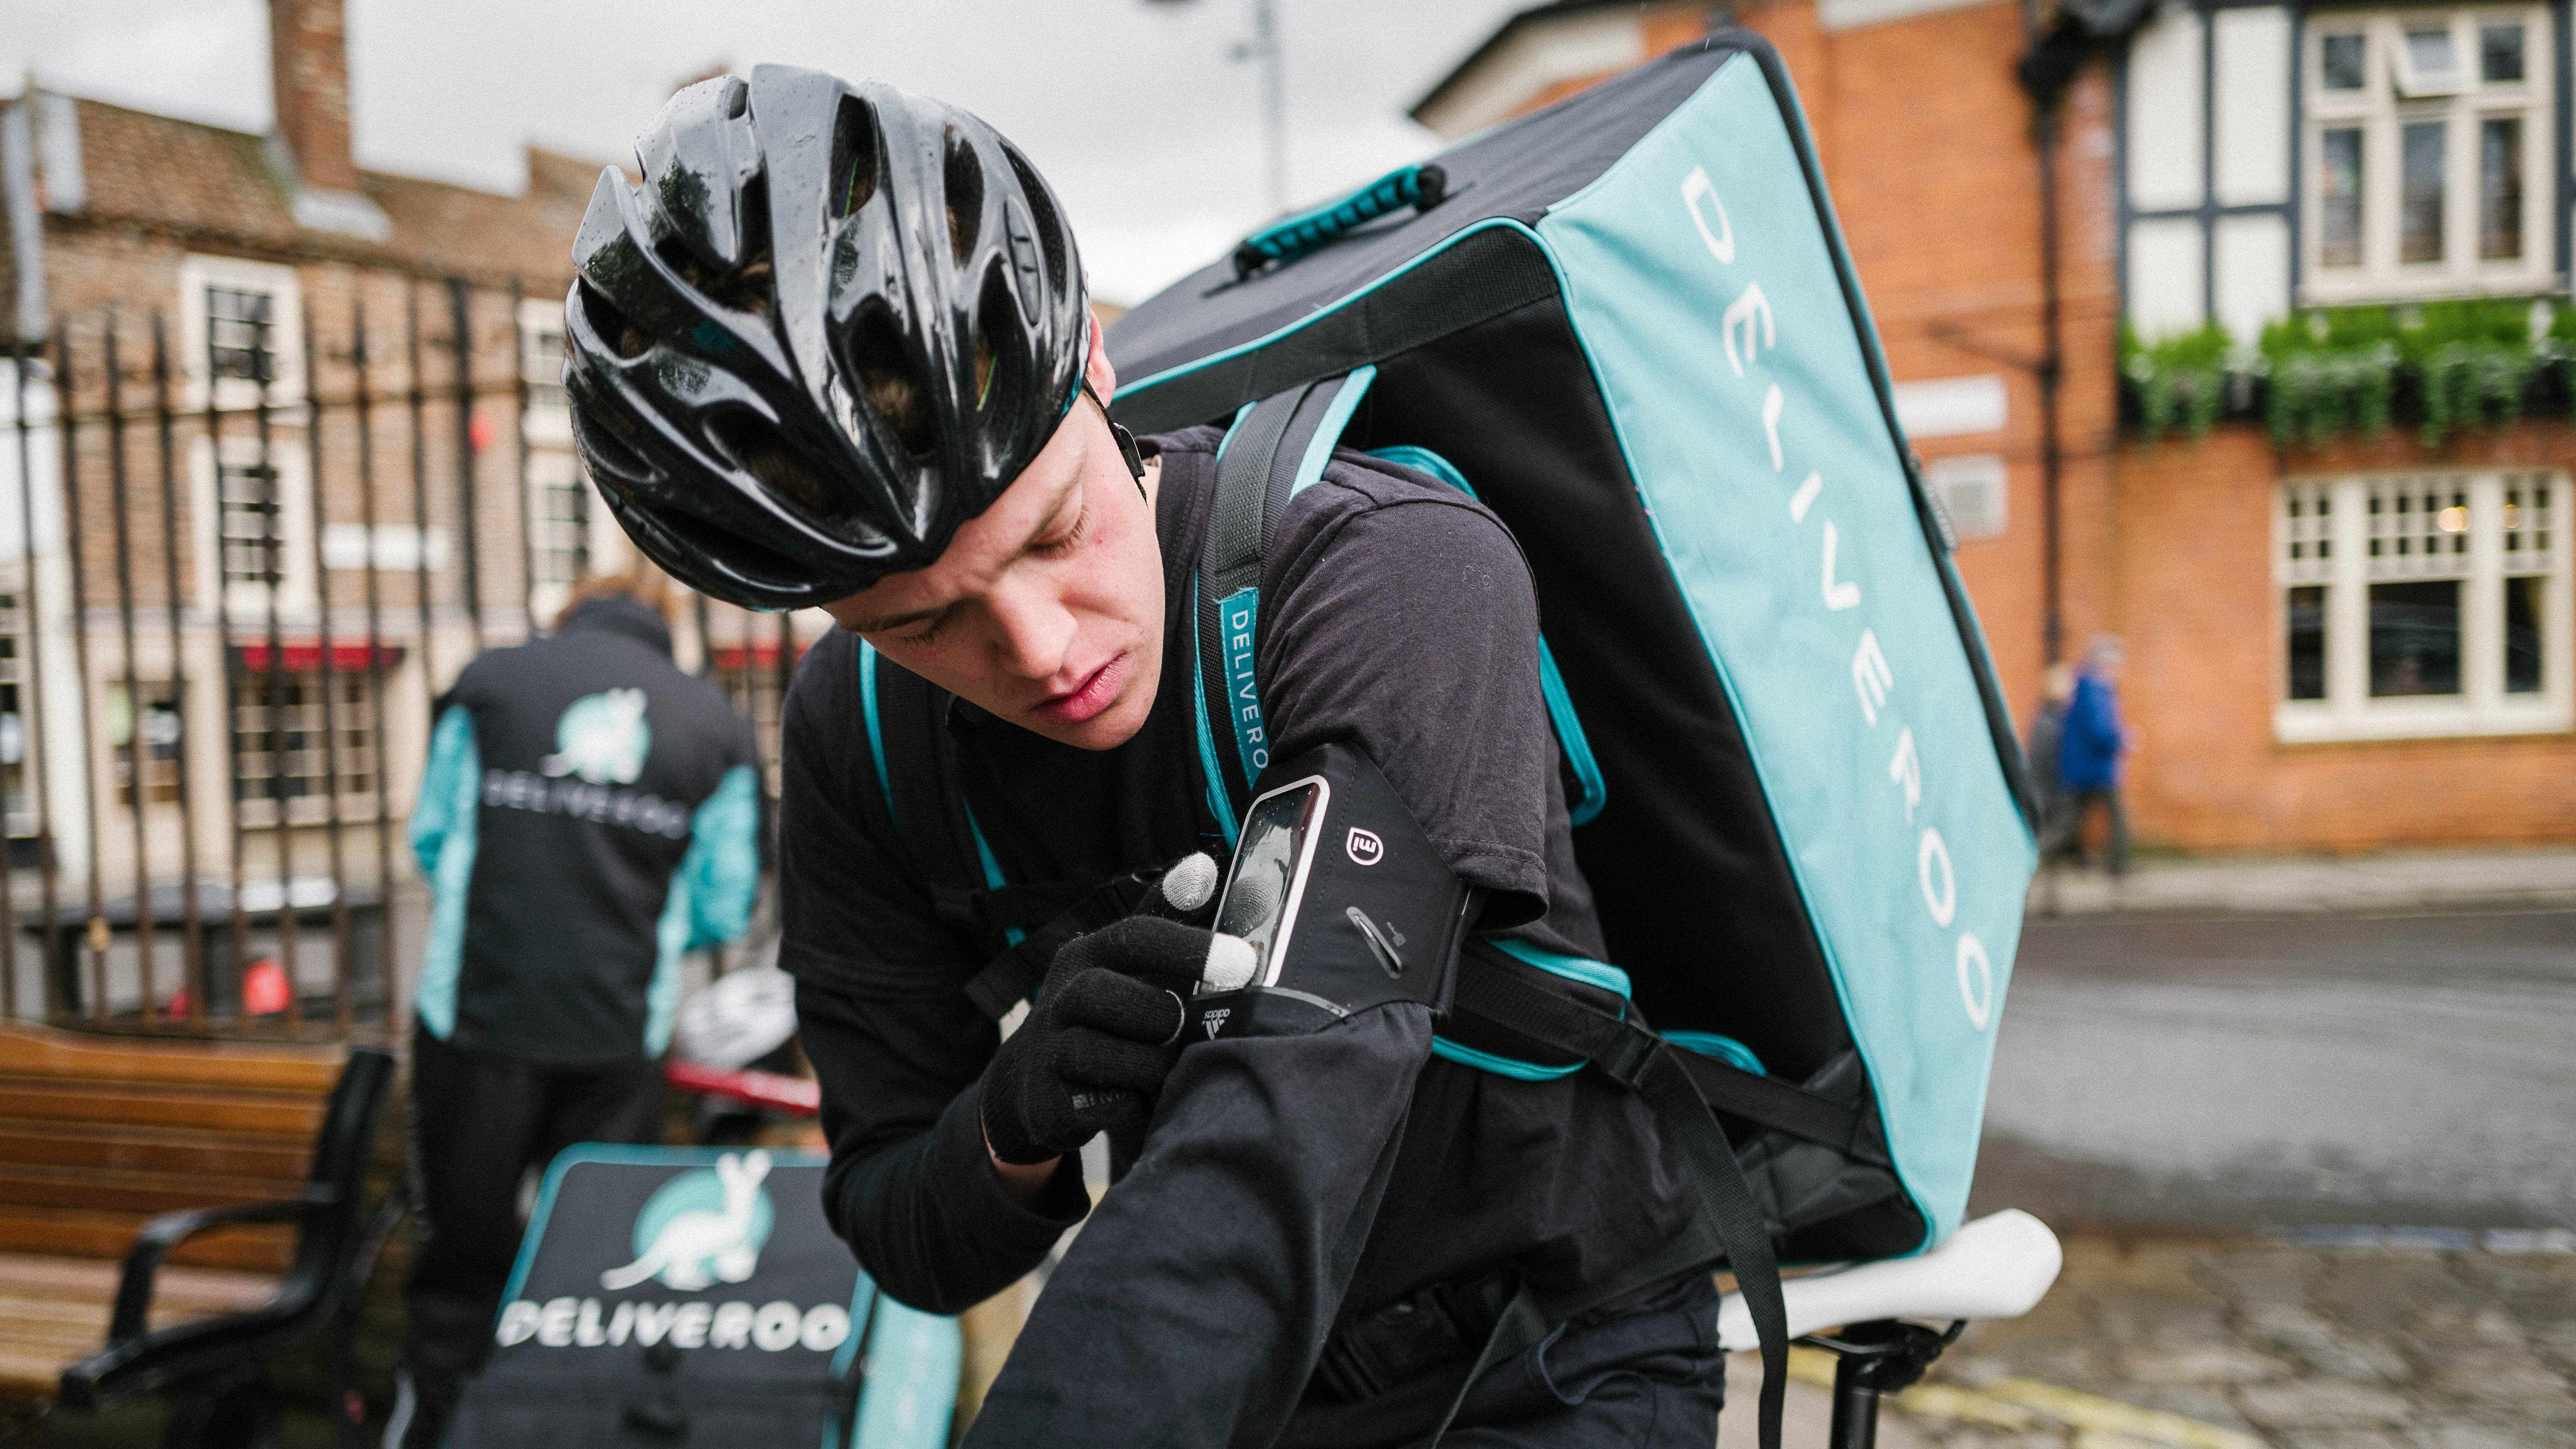 What's it like to strap on a Deliveroo pack for the evening? A rider describes his day